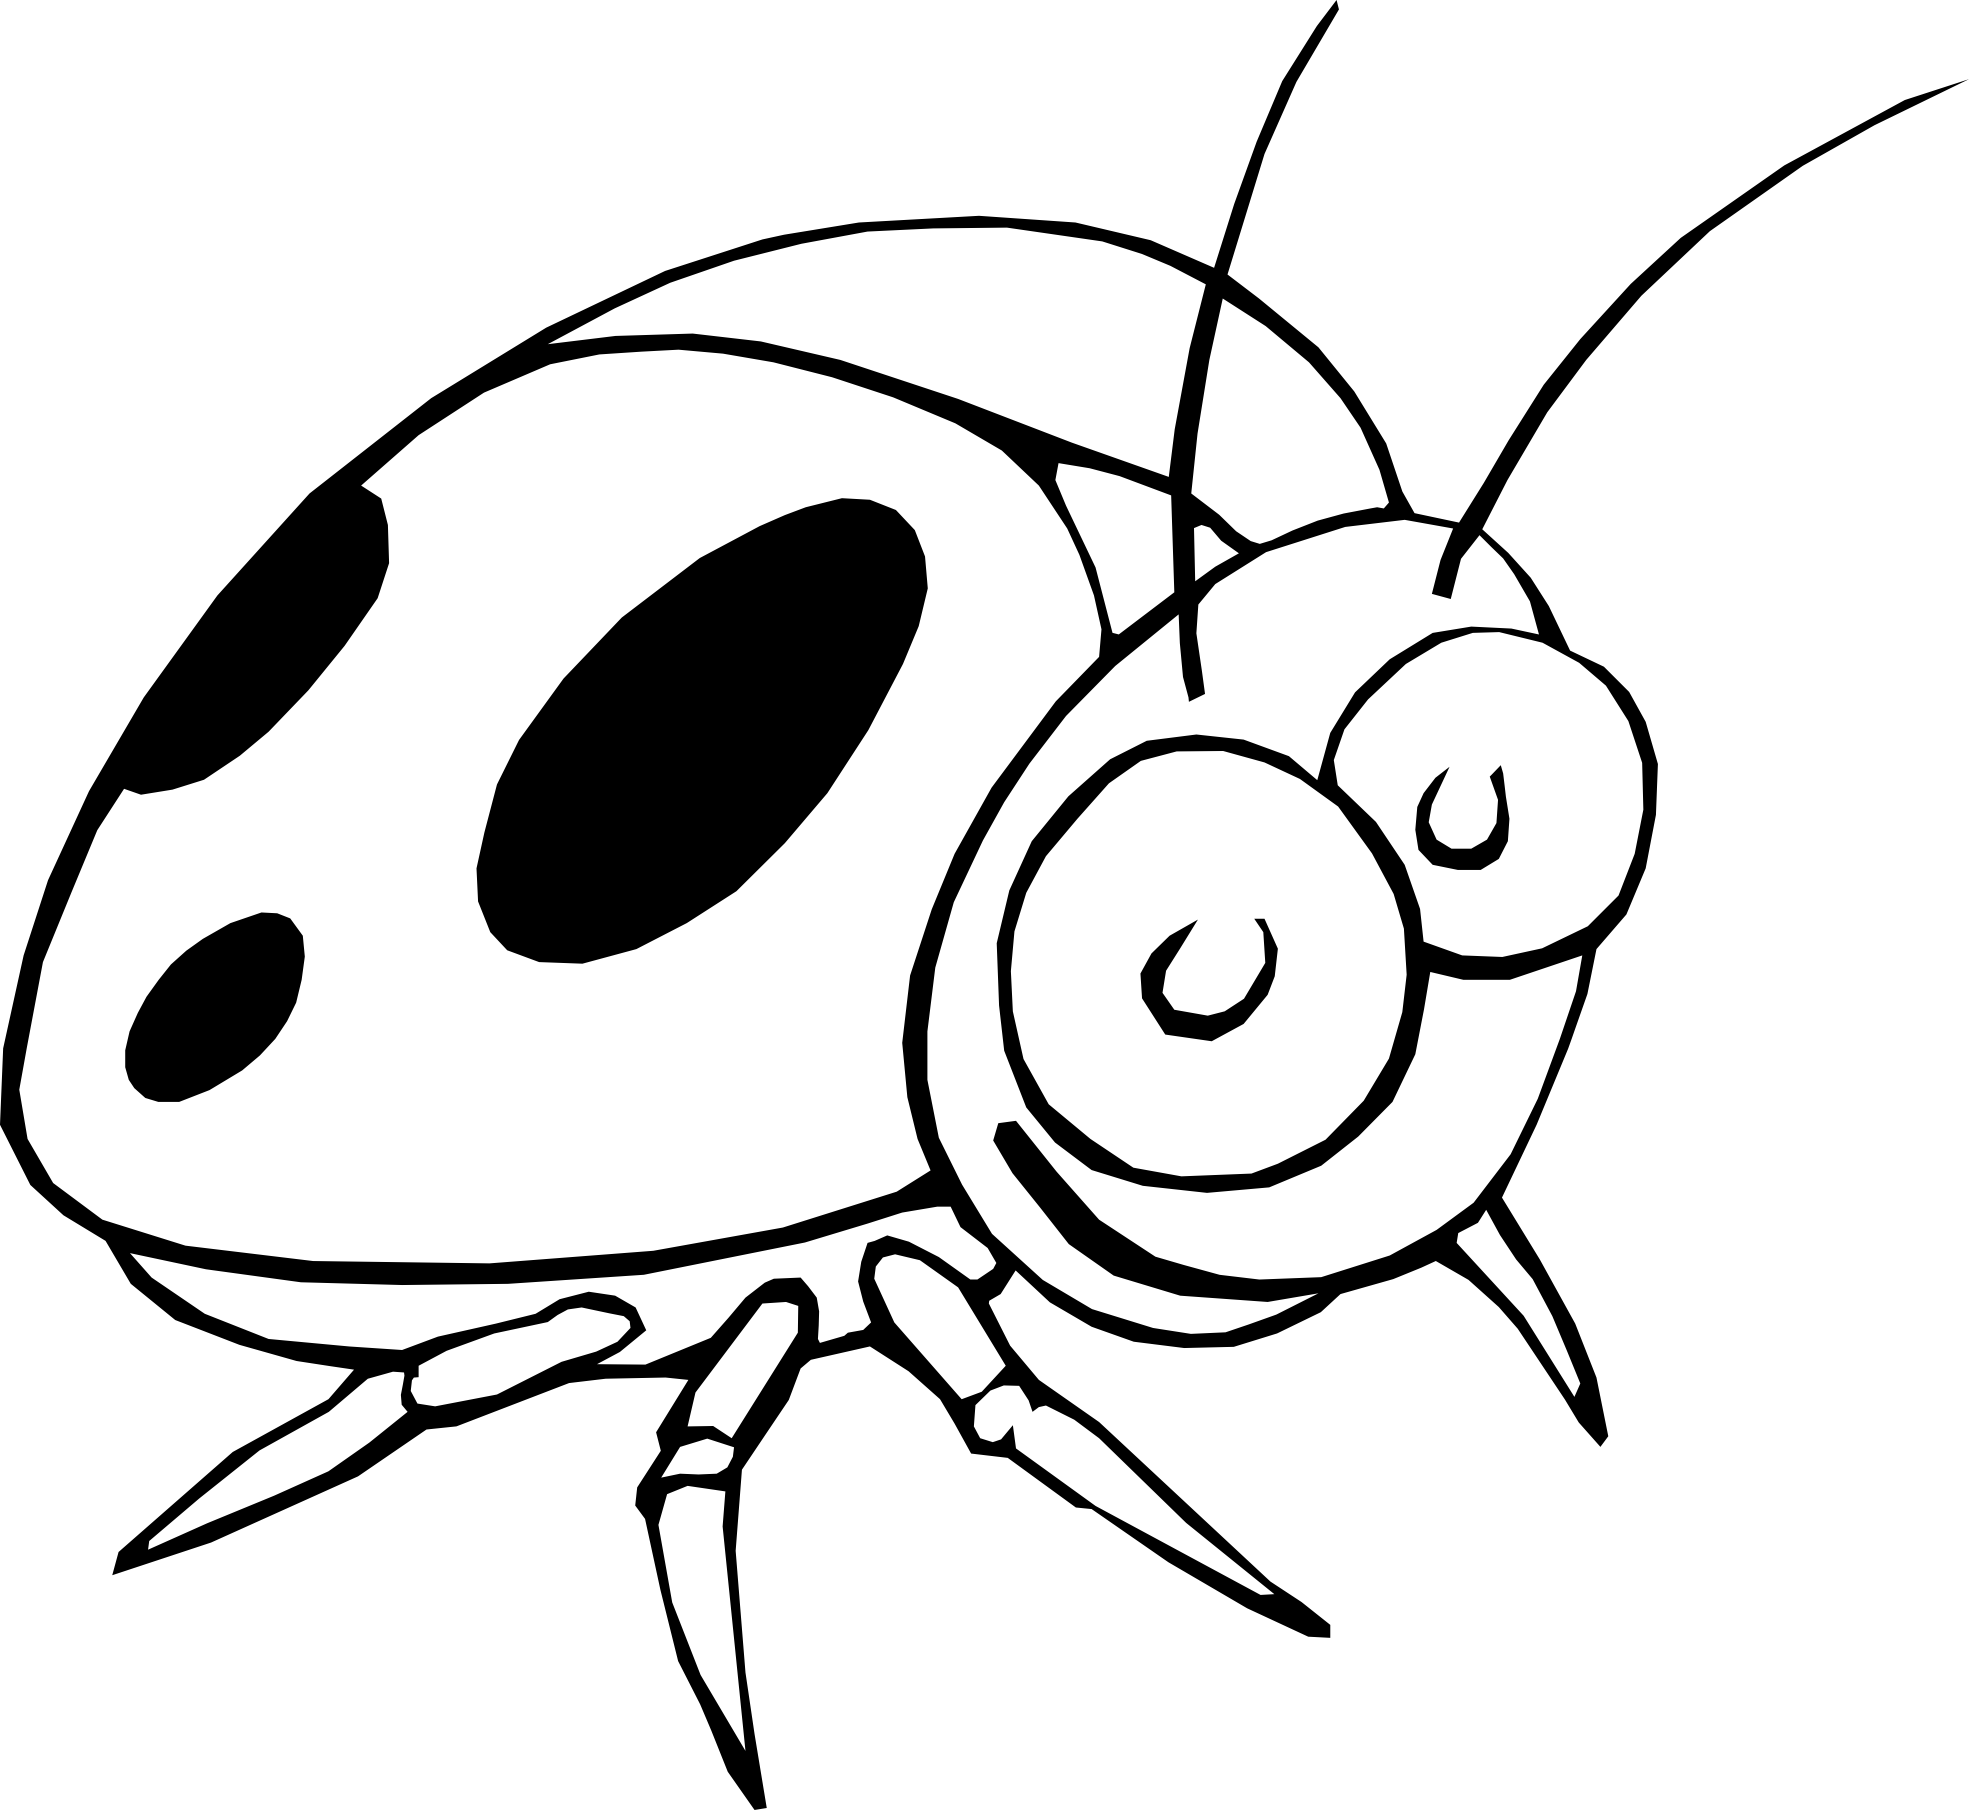 Vector ant black and white. Ladybug drawing pictures at